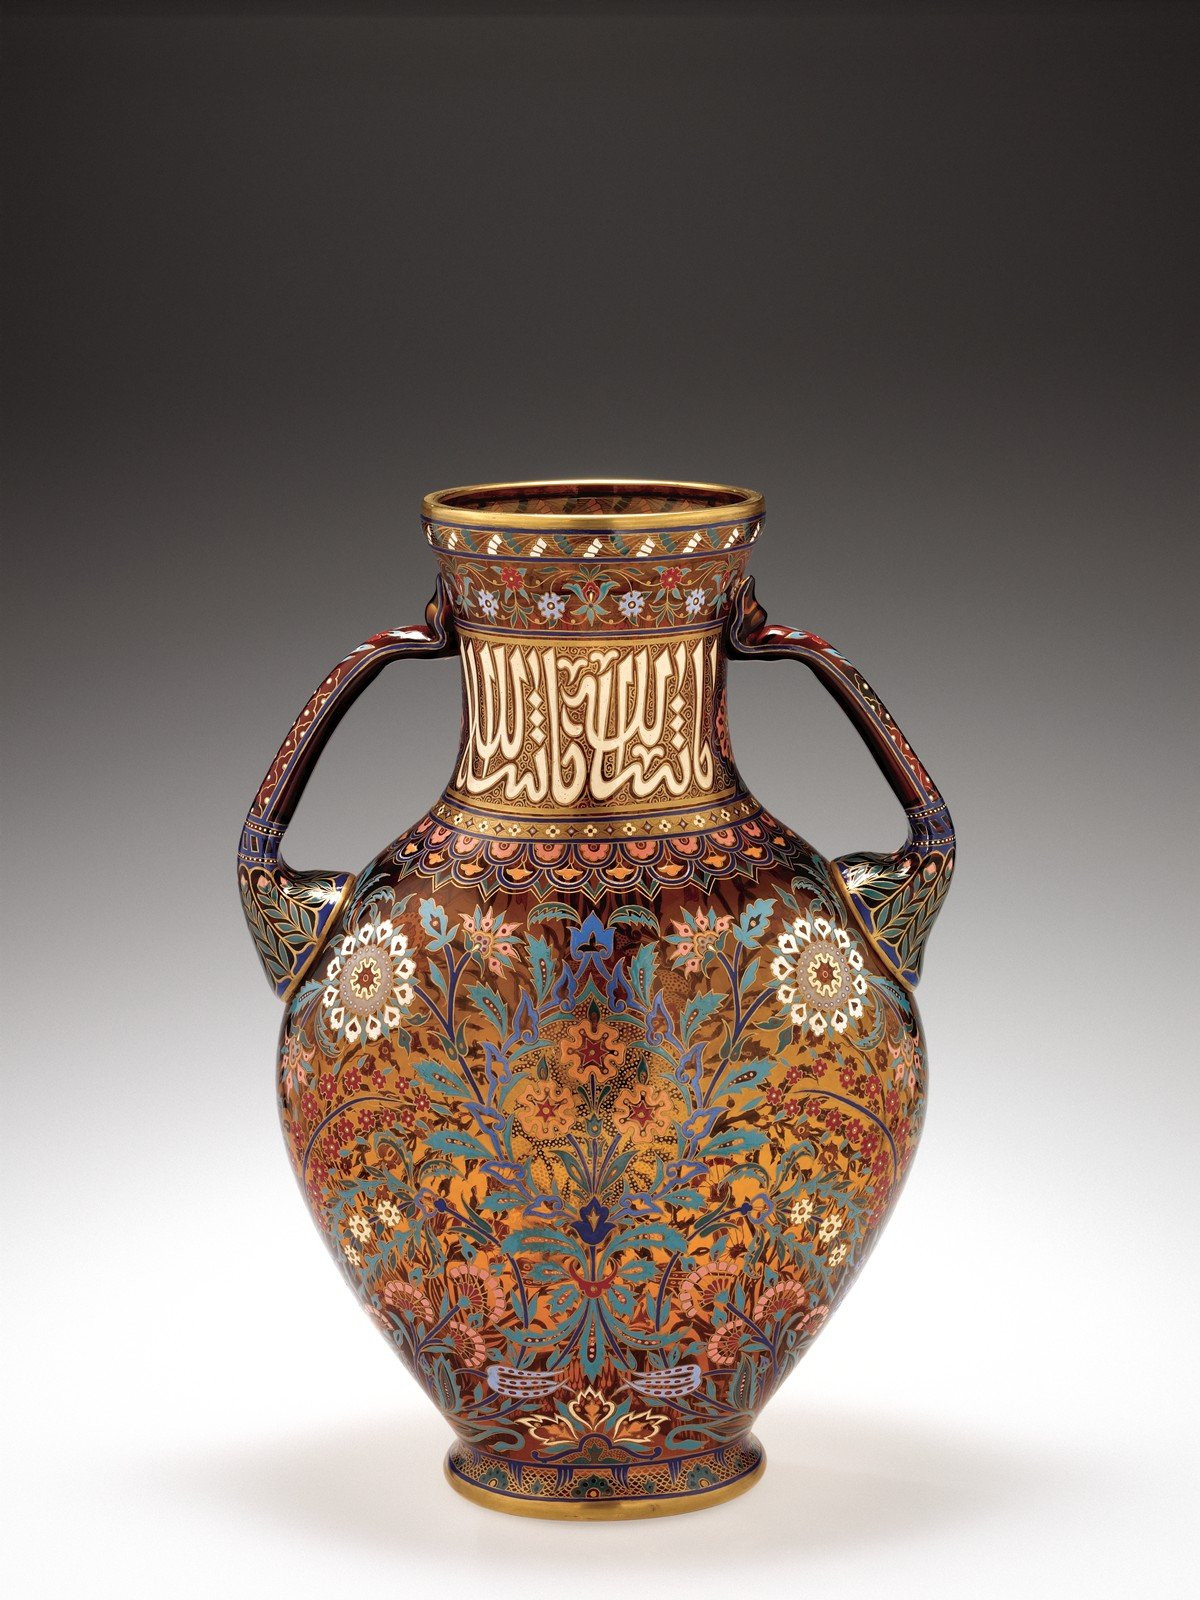 decorative glass rocks for vases of collection search corning museum of glass regarding persian series